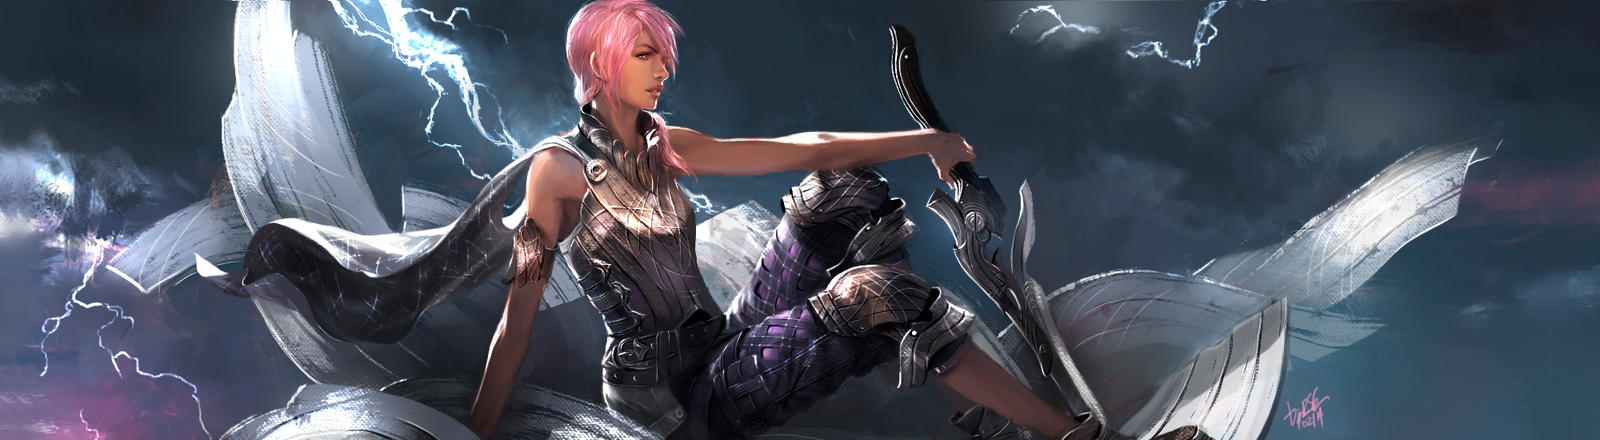 Lightning Returns - FFXIII by DiegooCunha